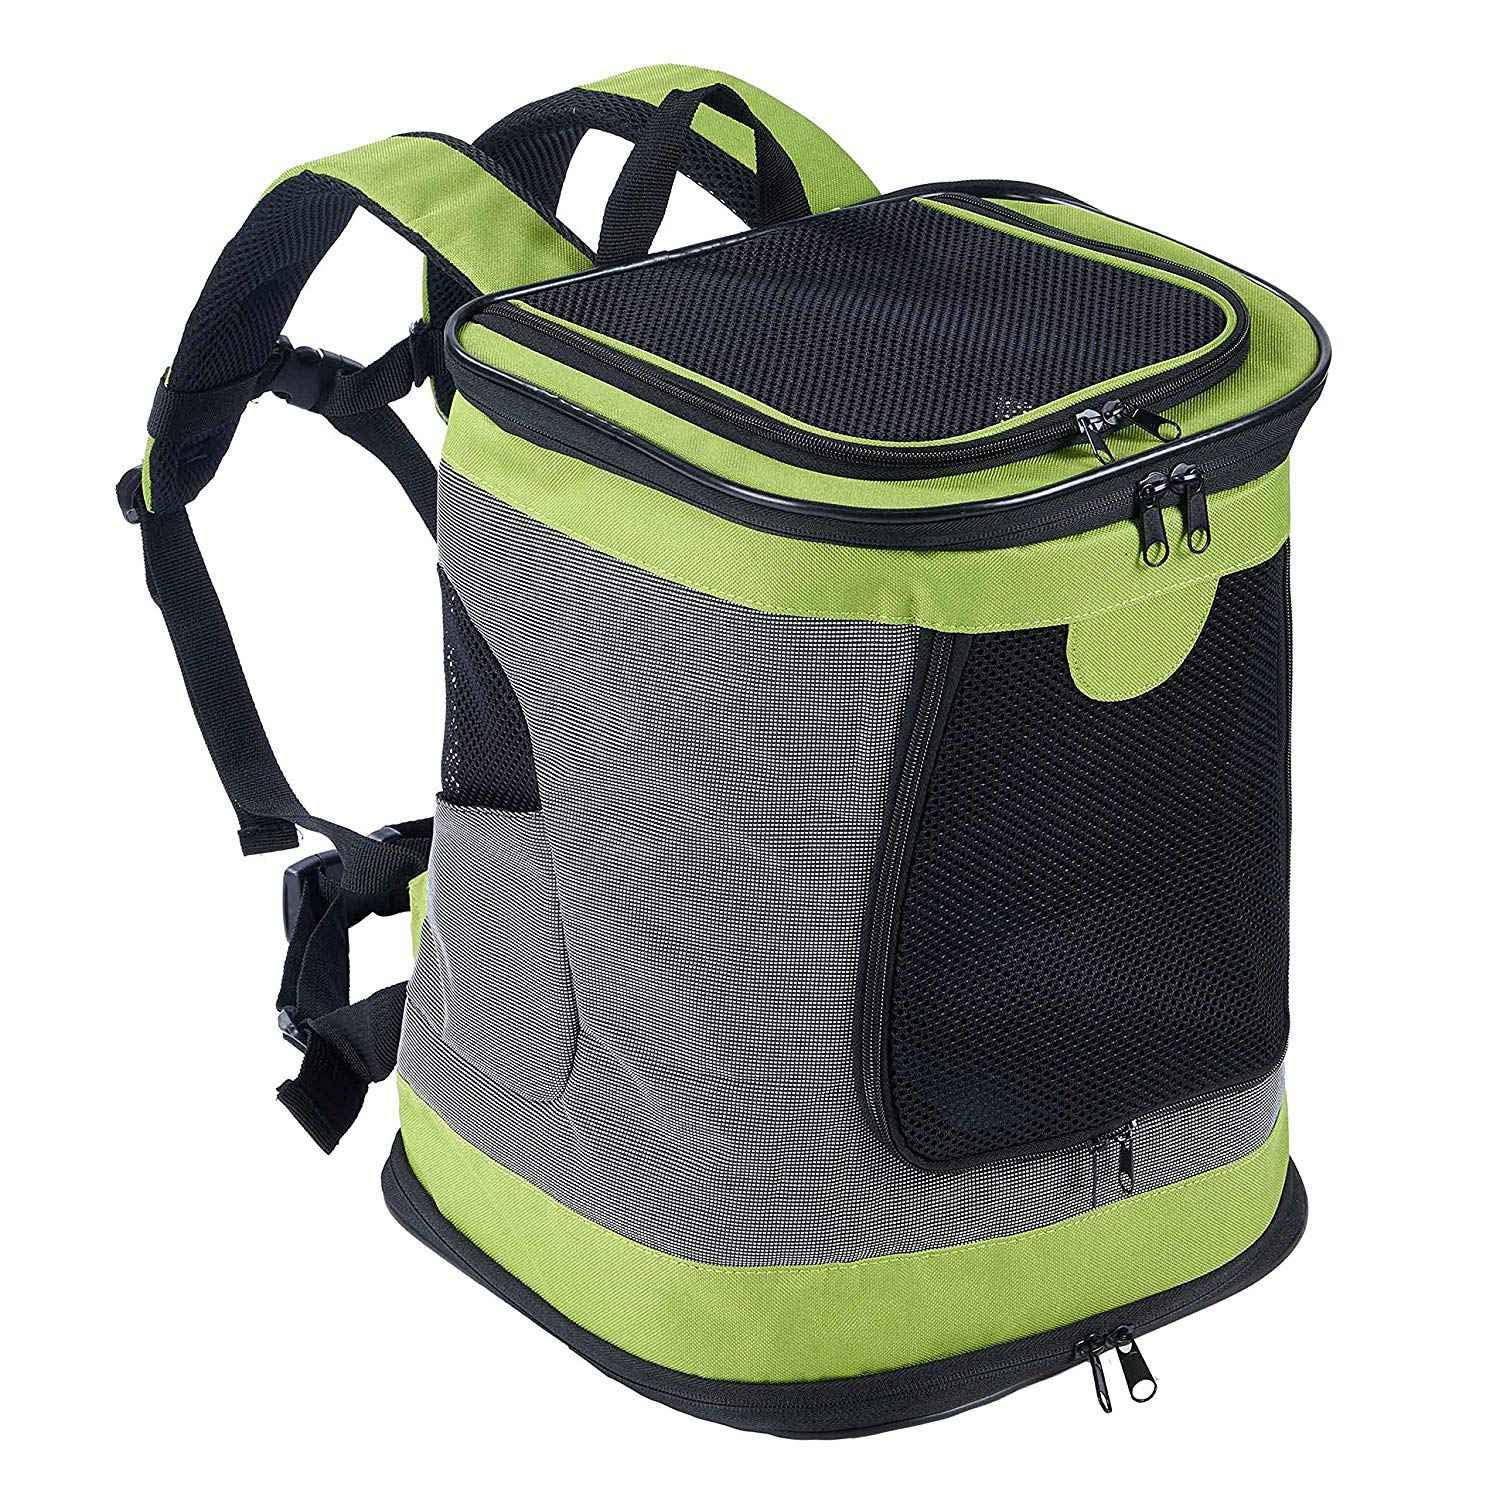 Green TOOGOO Pet Carrier Backpack for Small Medium Dogs Cats, Airline Approved Bag with Mesh Windows for Travel, Hiking, Outdoor Green